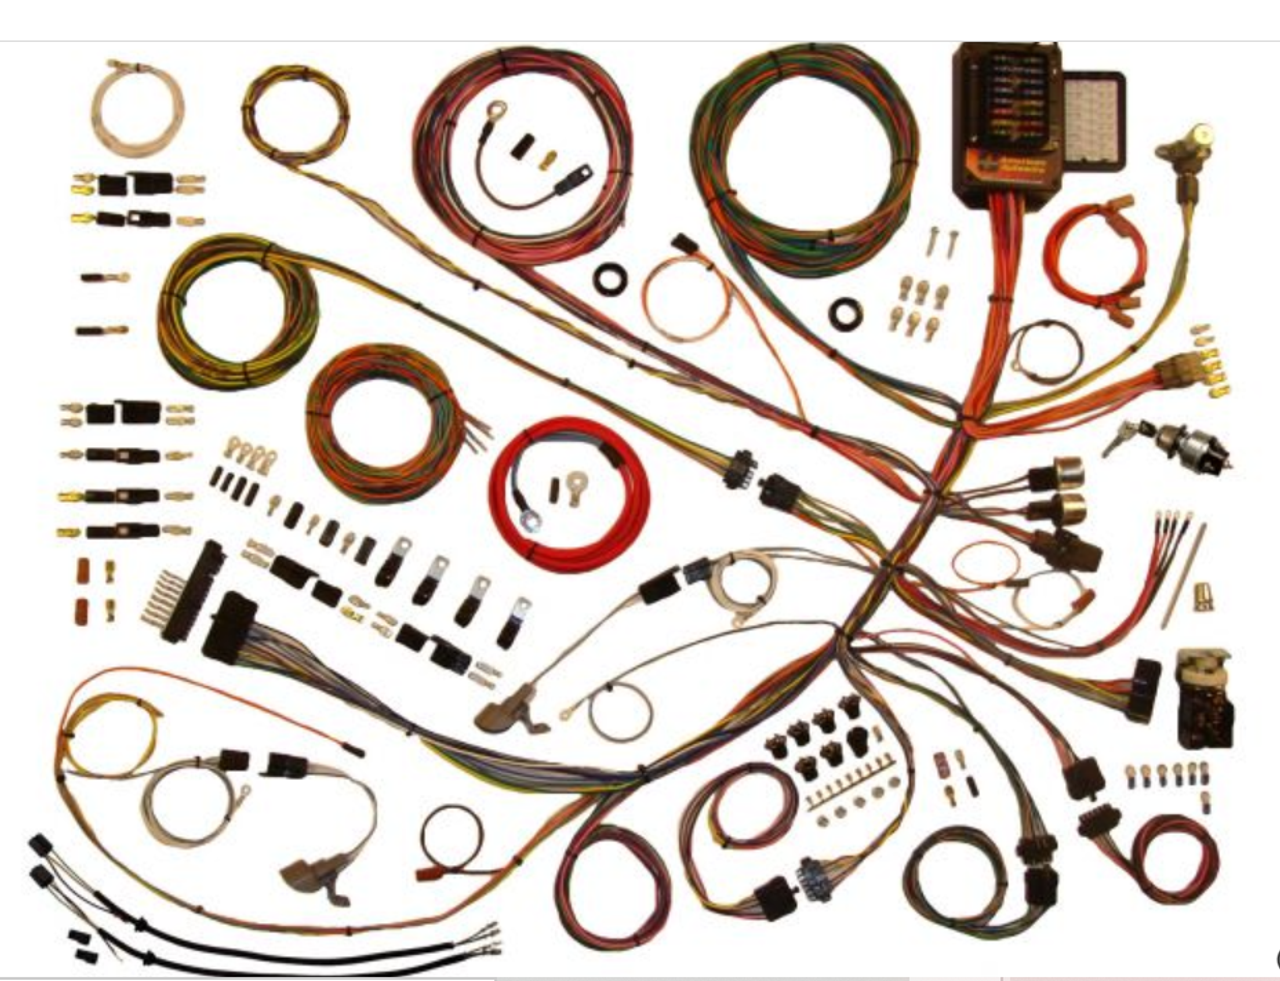 American Autowire 1953-56 Ford Truck Classic Update Complete Wiring Harness